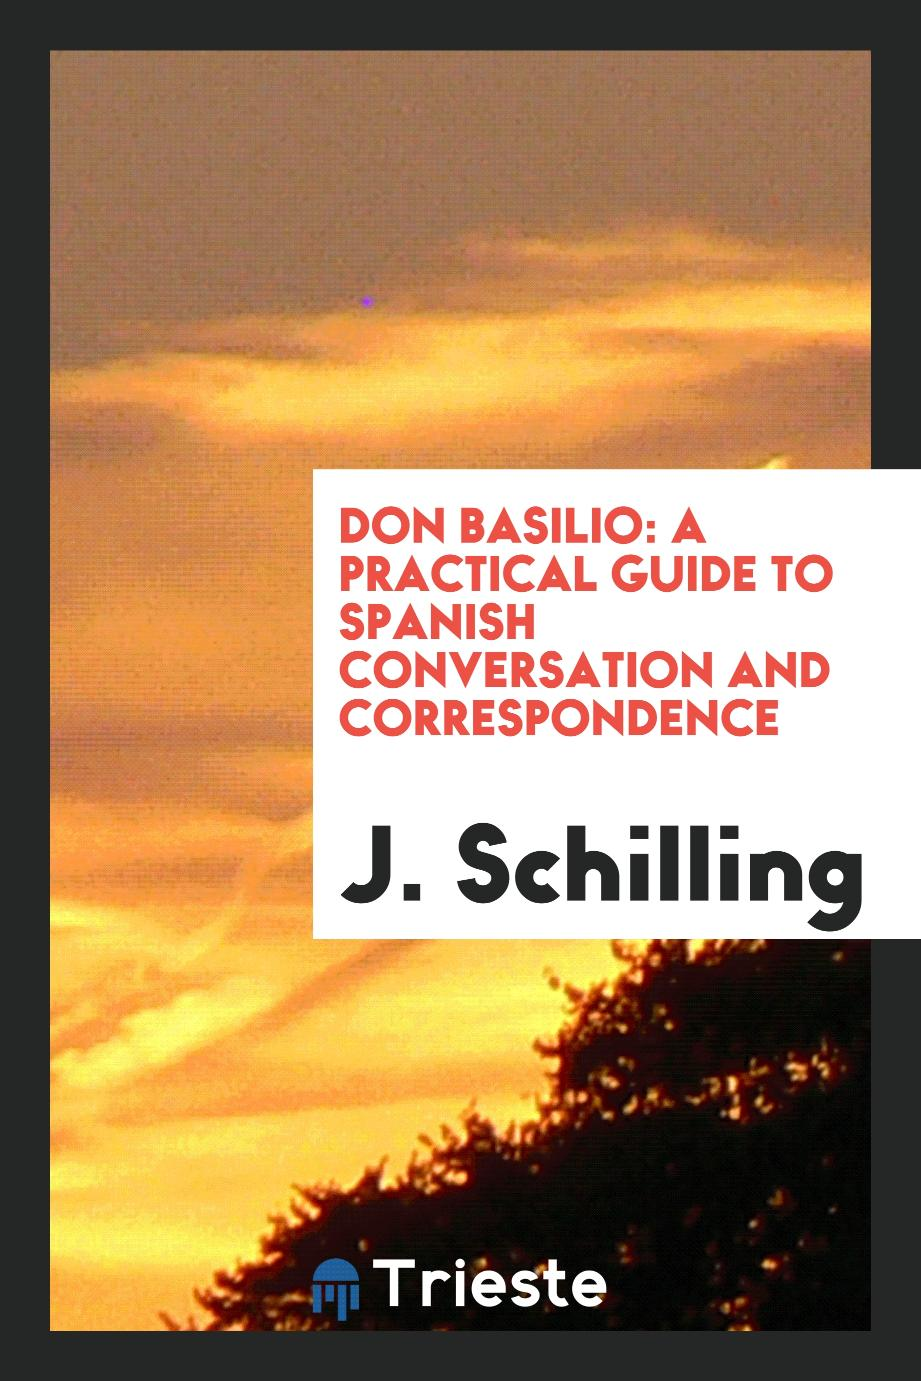 Don Basilio: A Practical Guide to Spanish Conversation And Correspondence